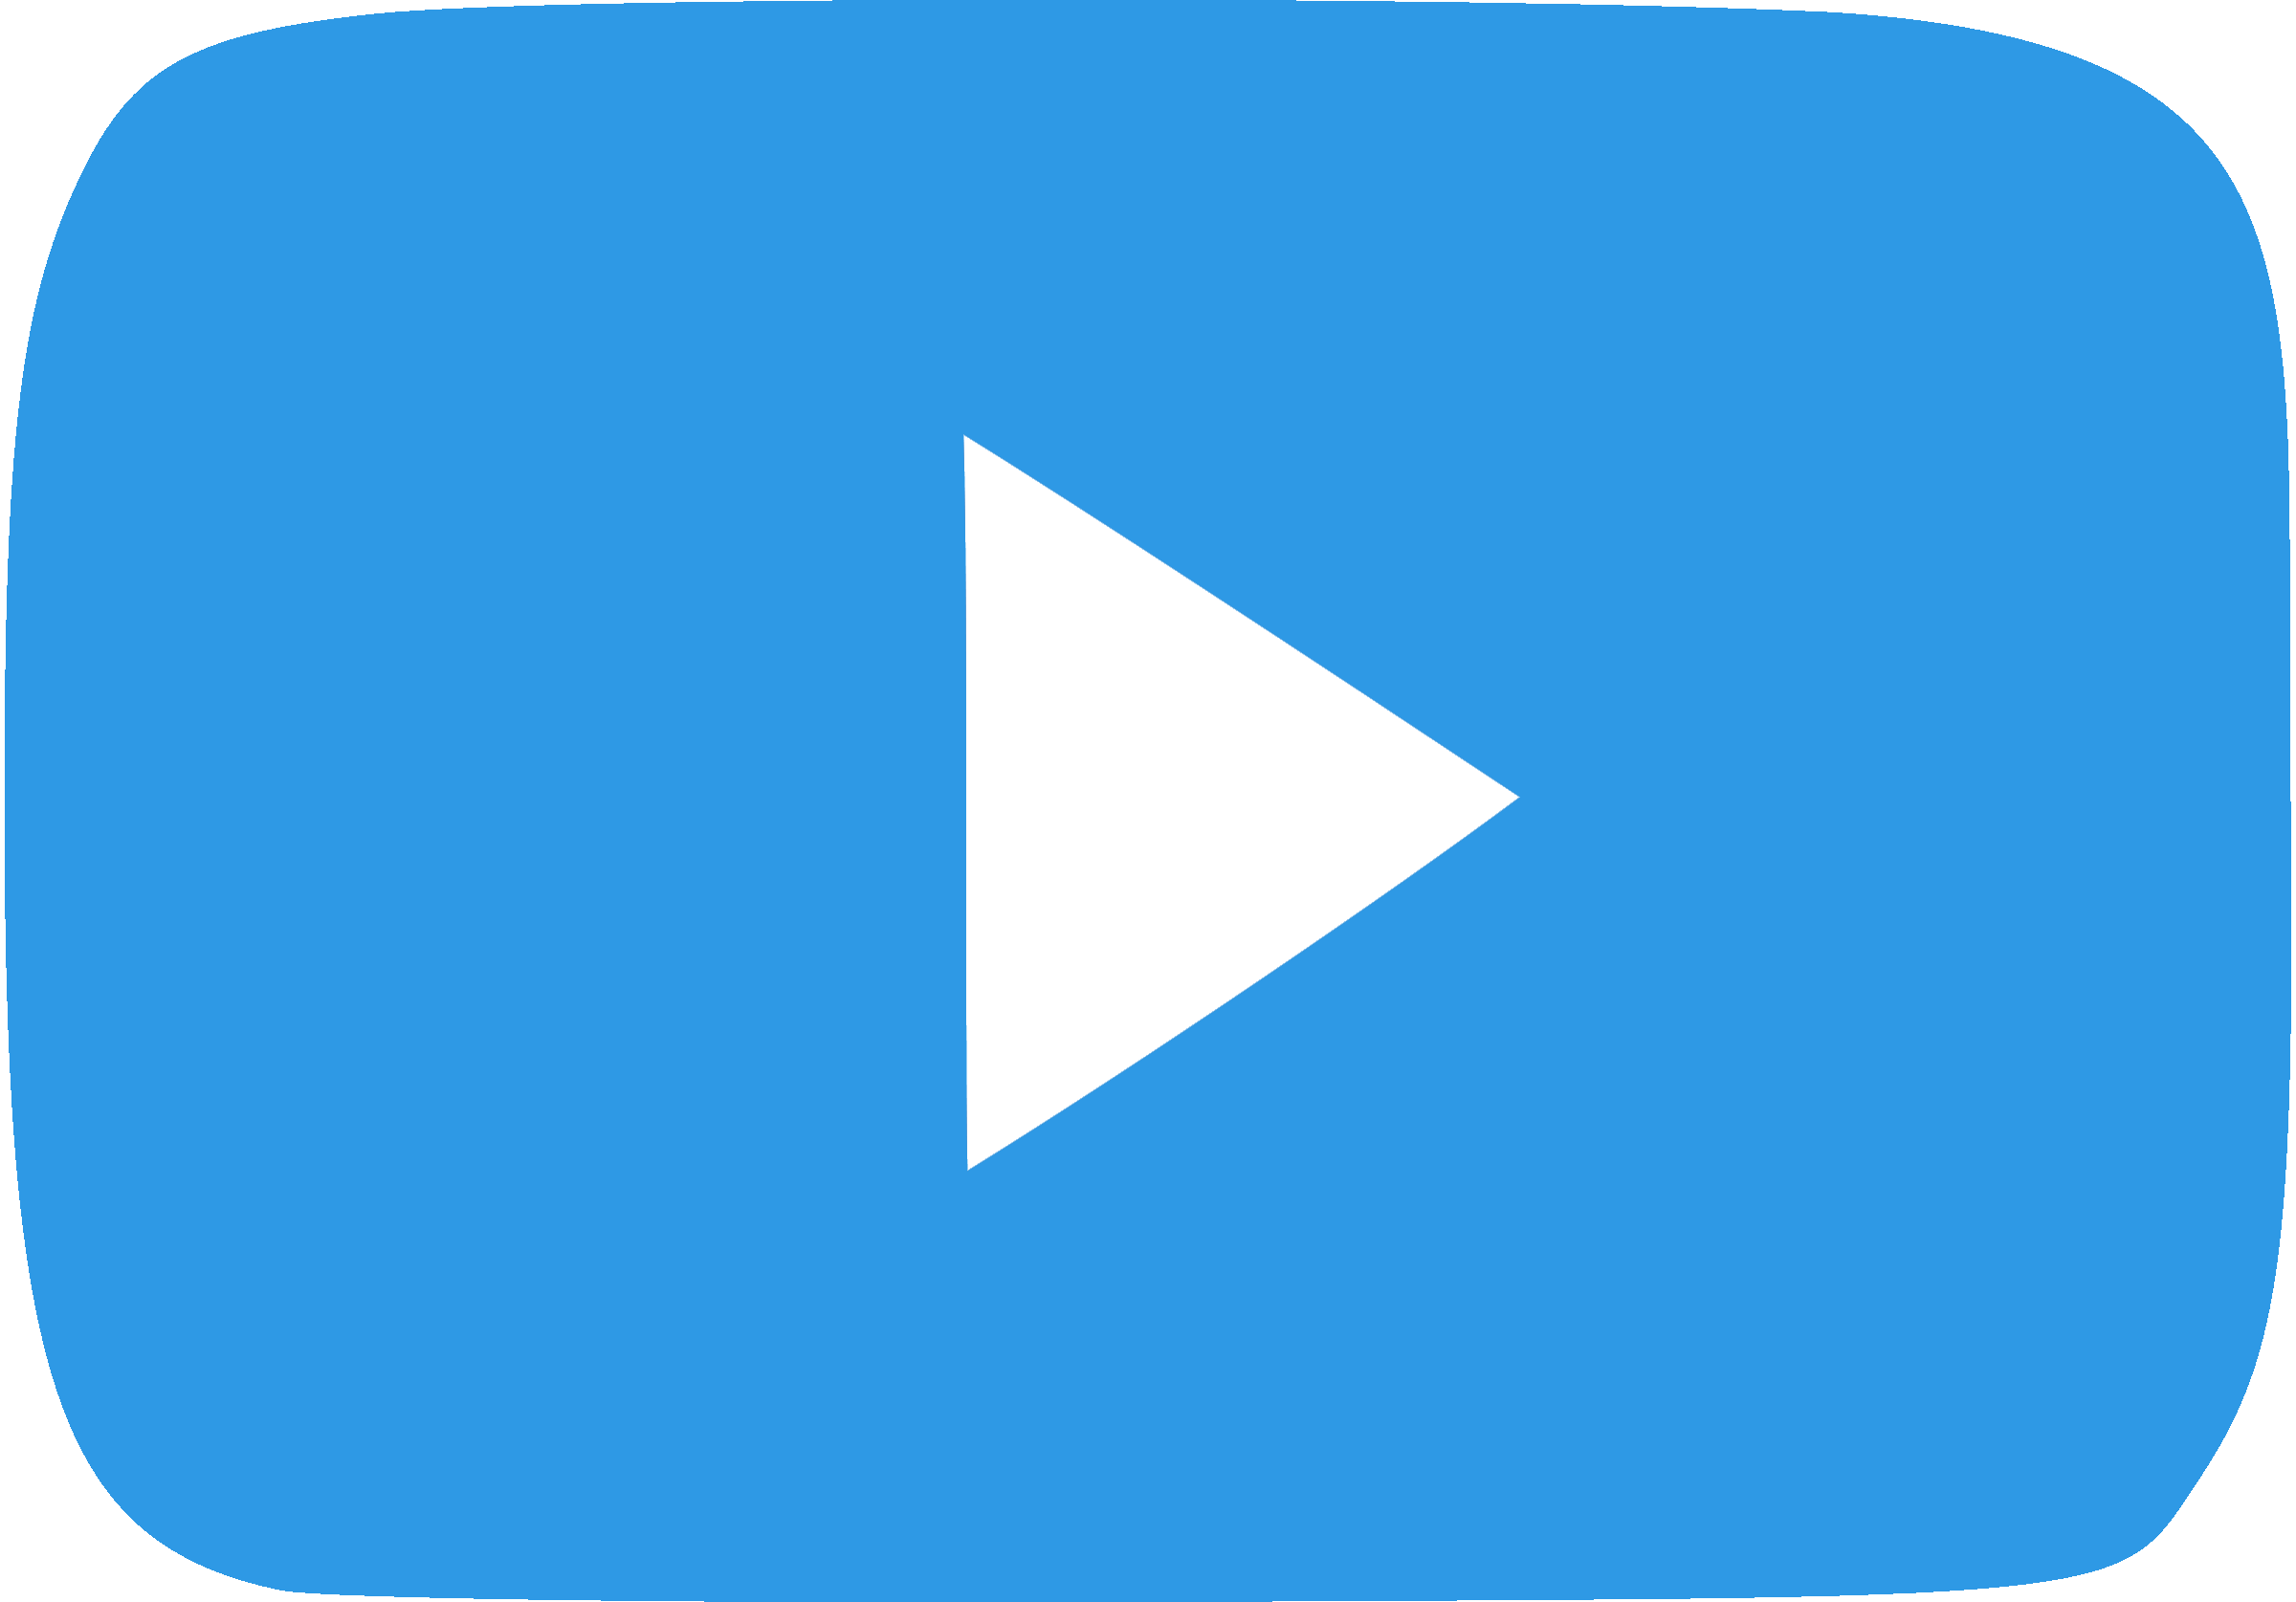 Play Button PNG - 174003